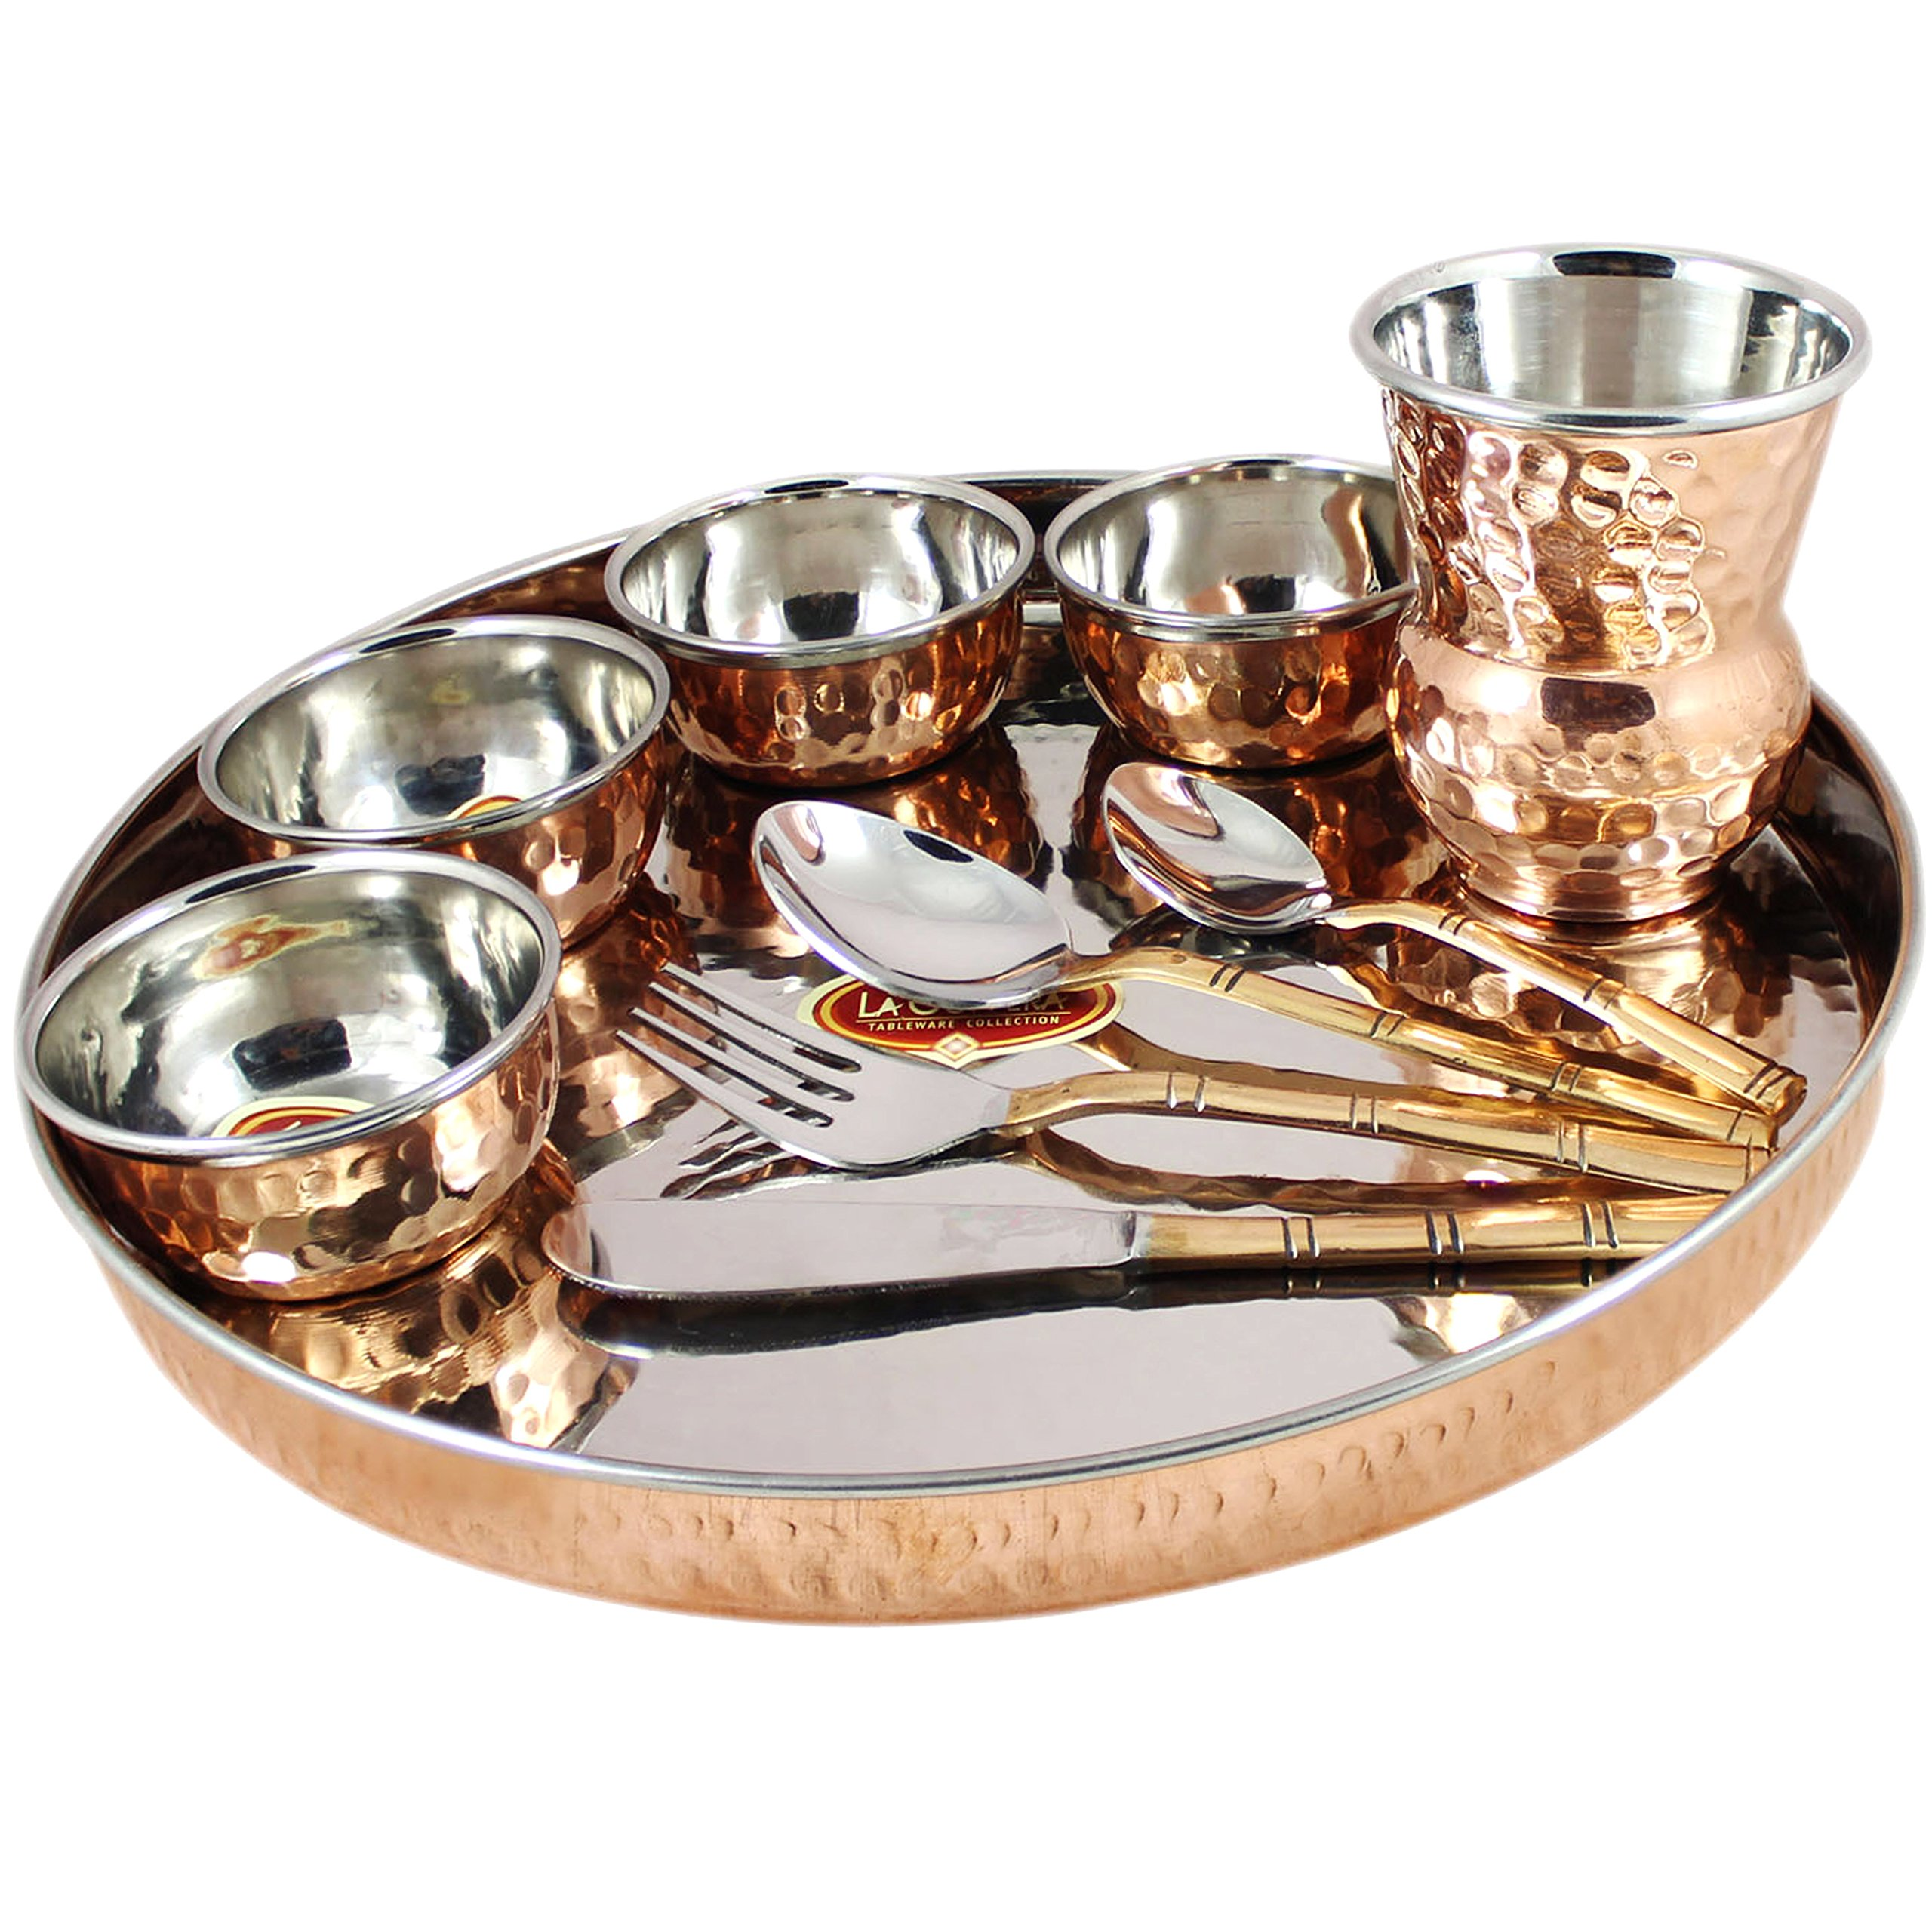 SKAVIJ Dinnerware Set Service for 1, Dinner Plates Bowls Mugs and Cutlery Set 10 -Piece Set, Copper Stainless Steel